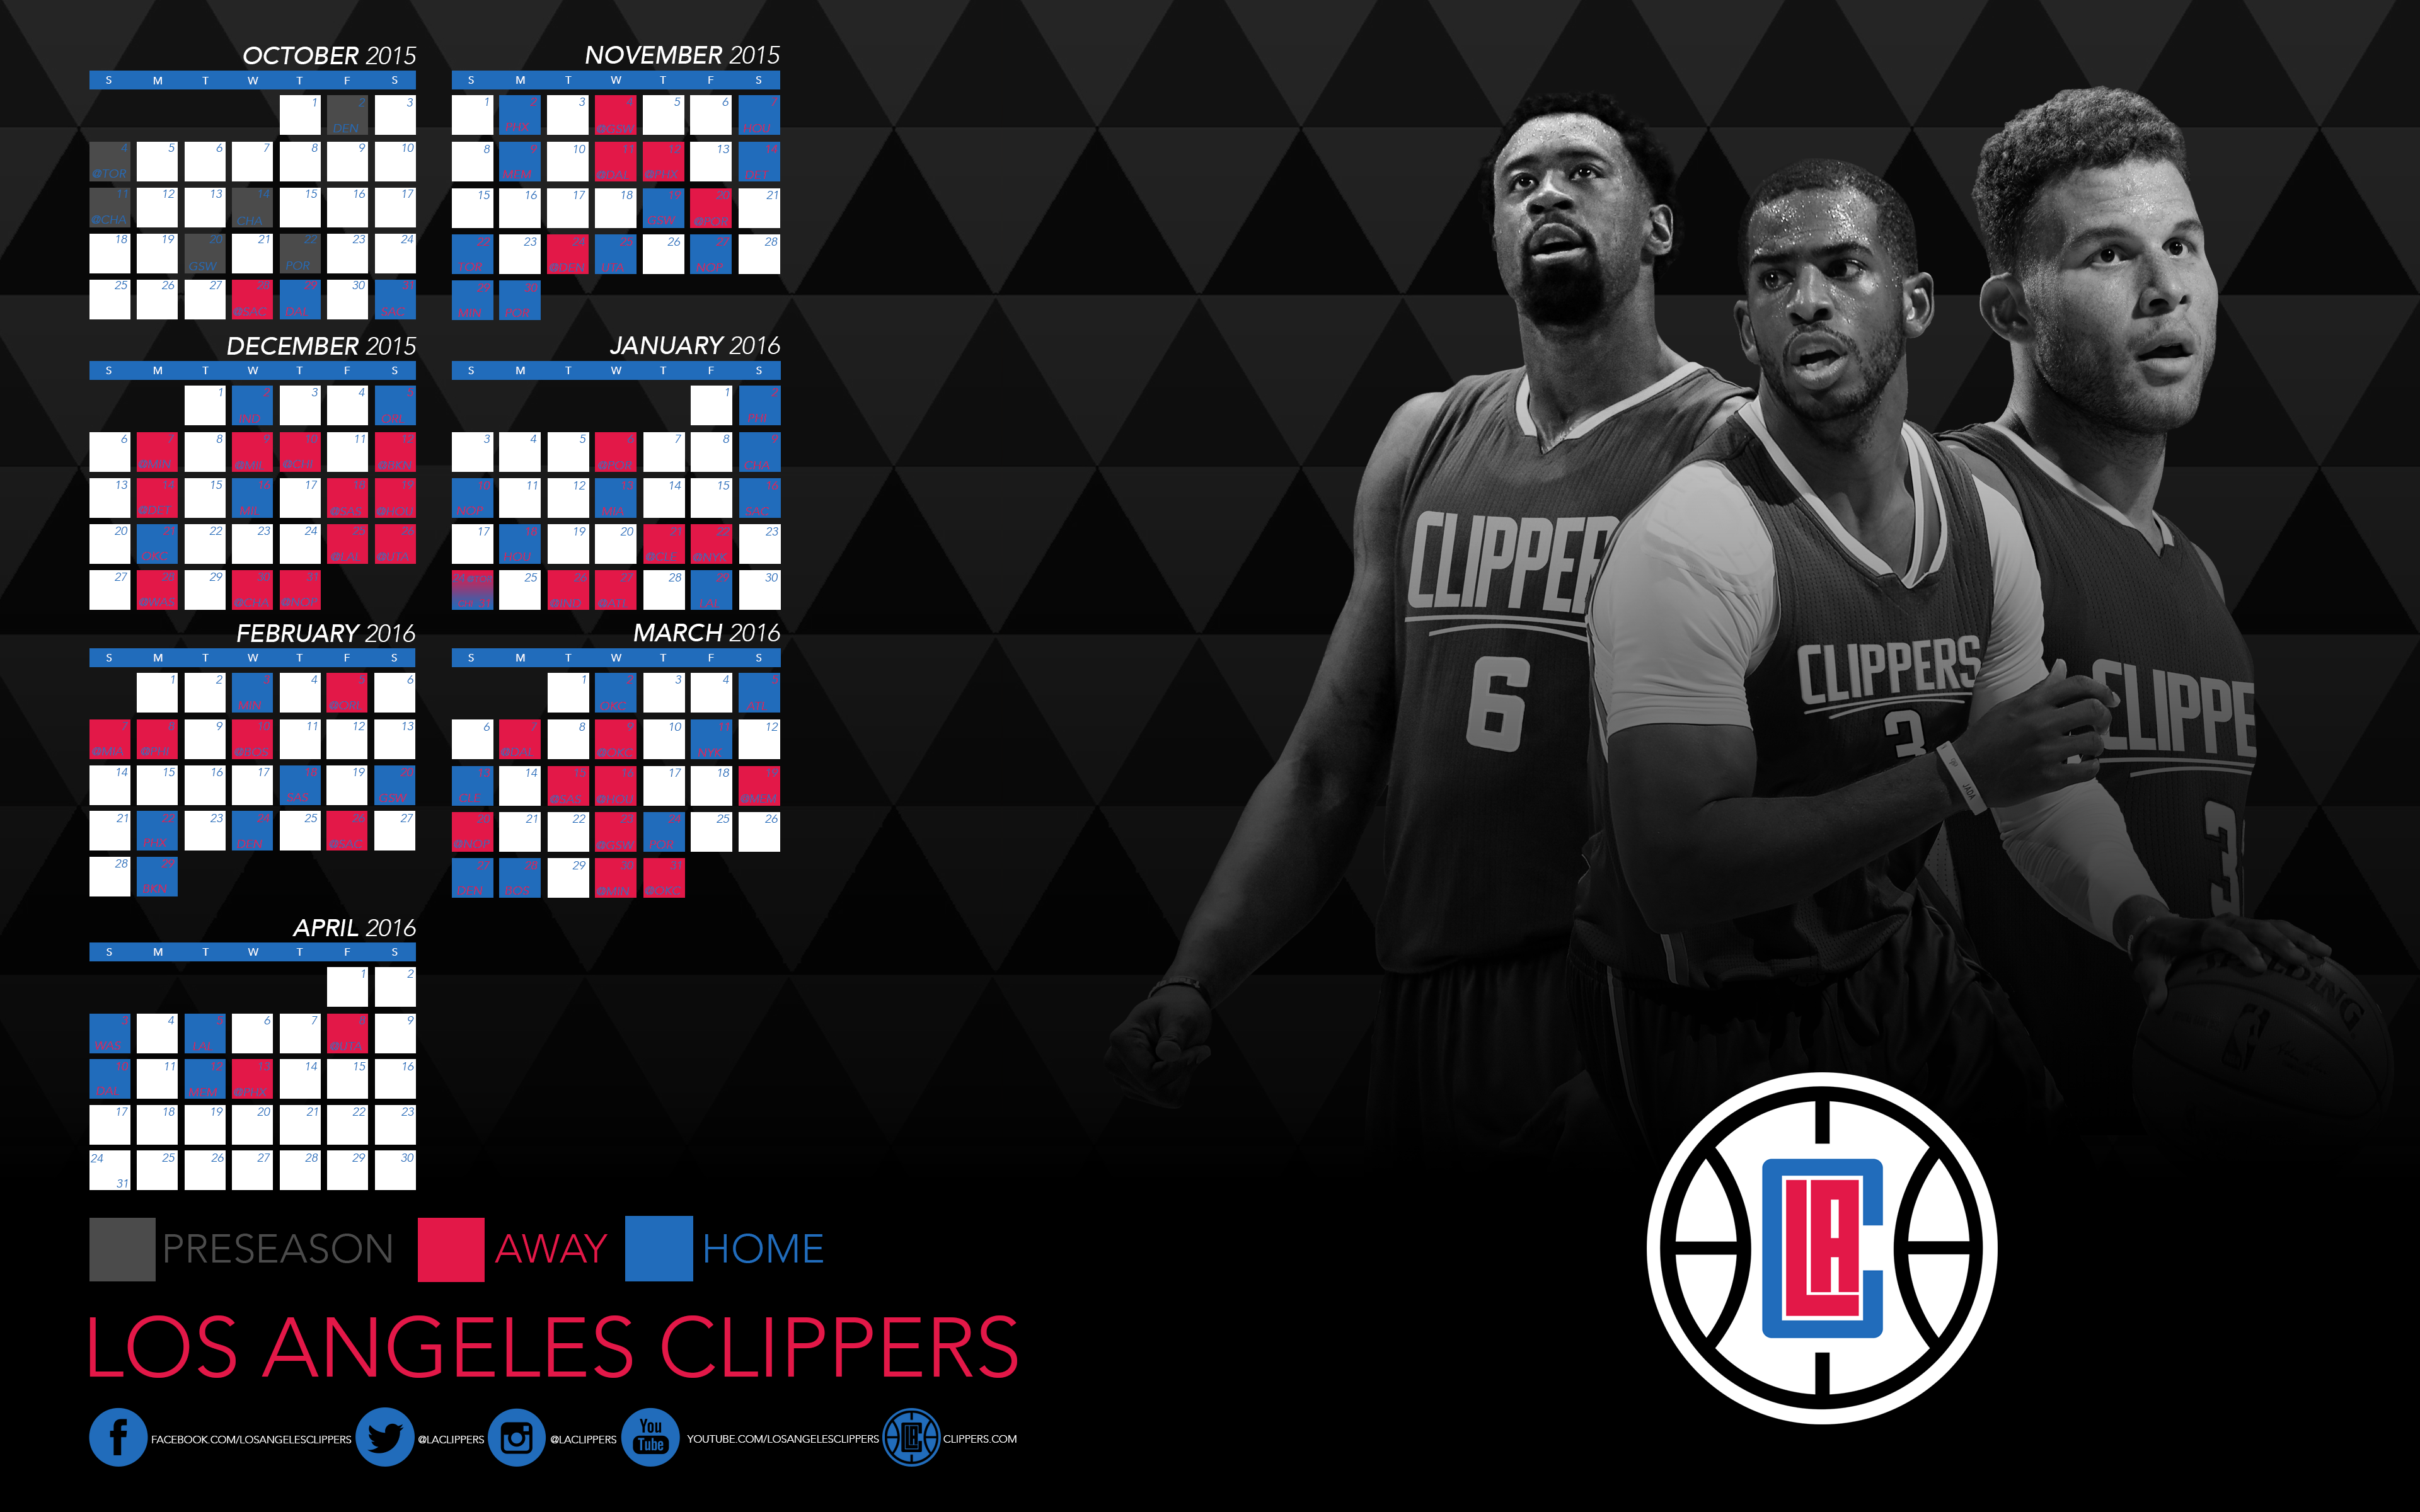 Clippers Wallpaper 3840x2400 px